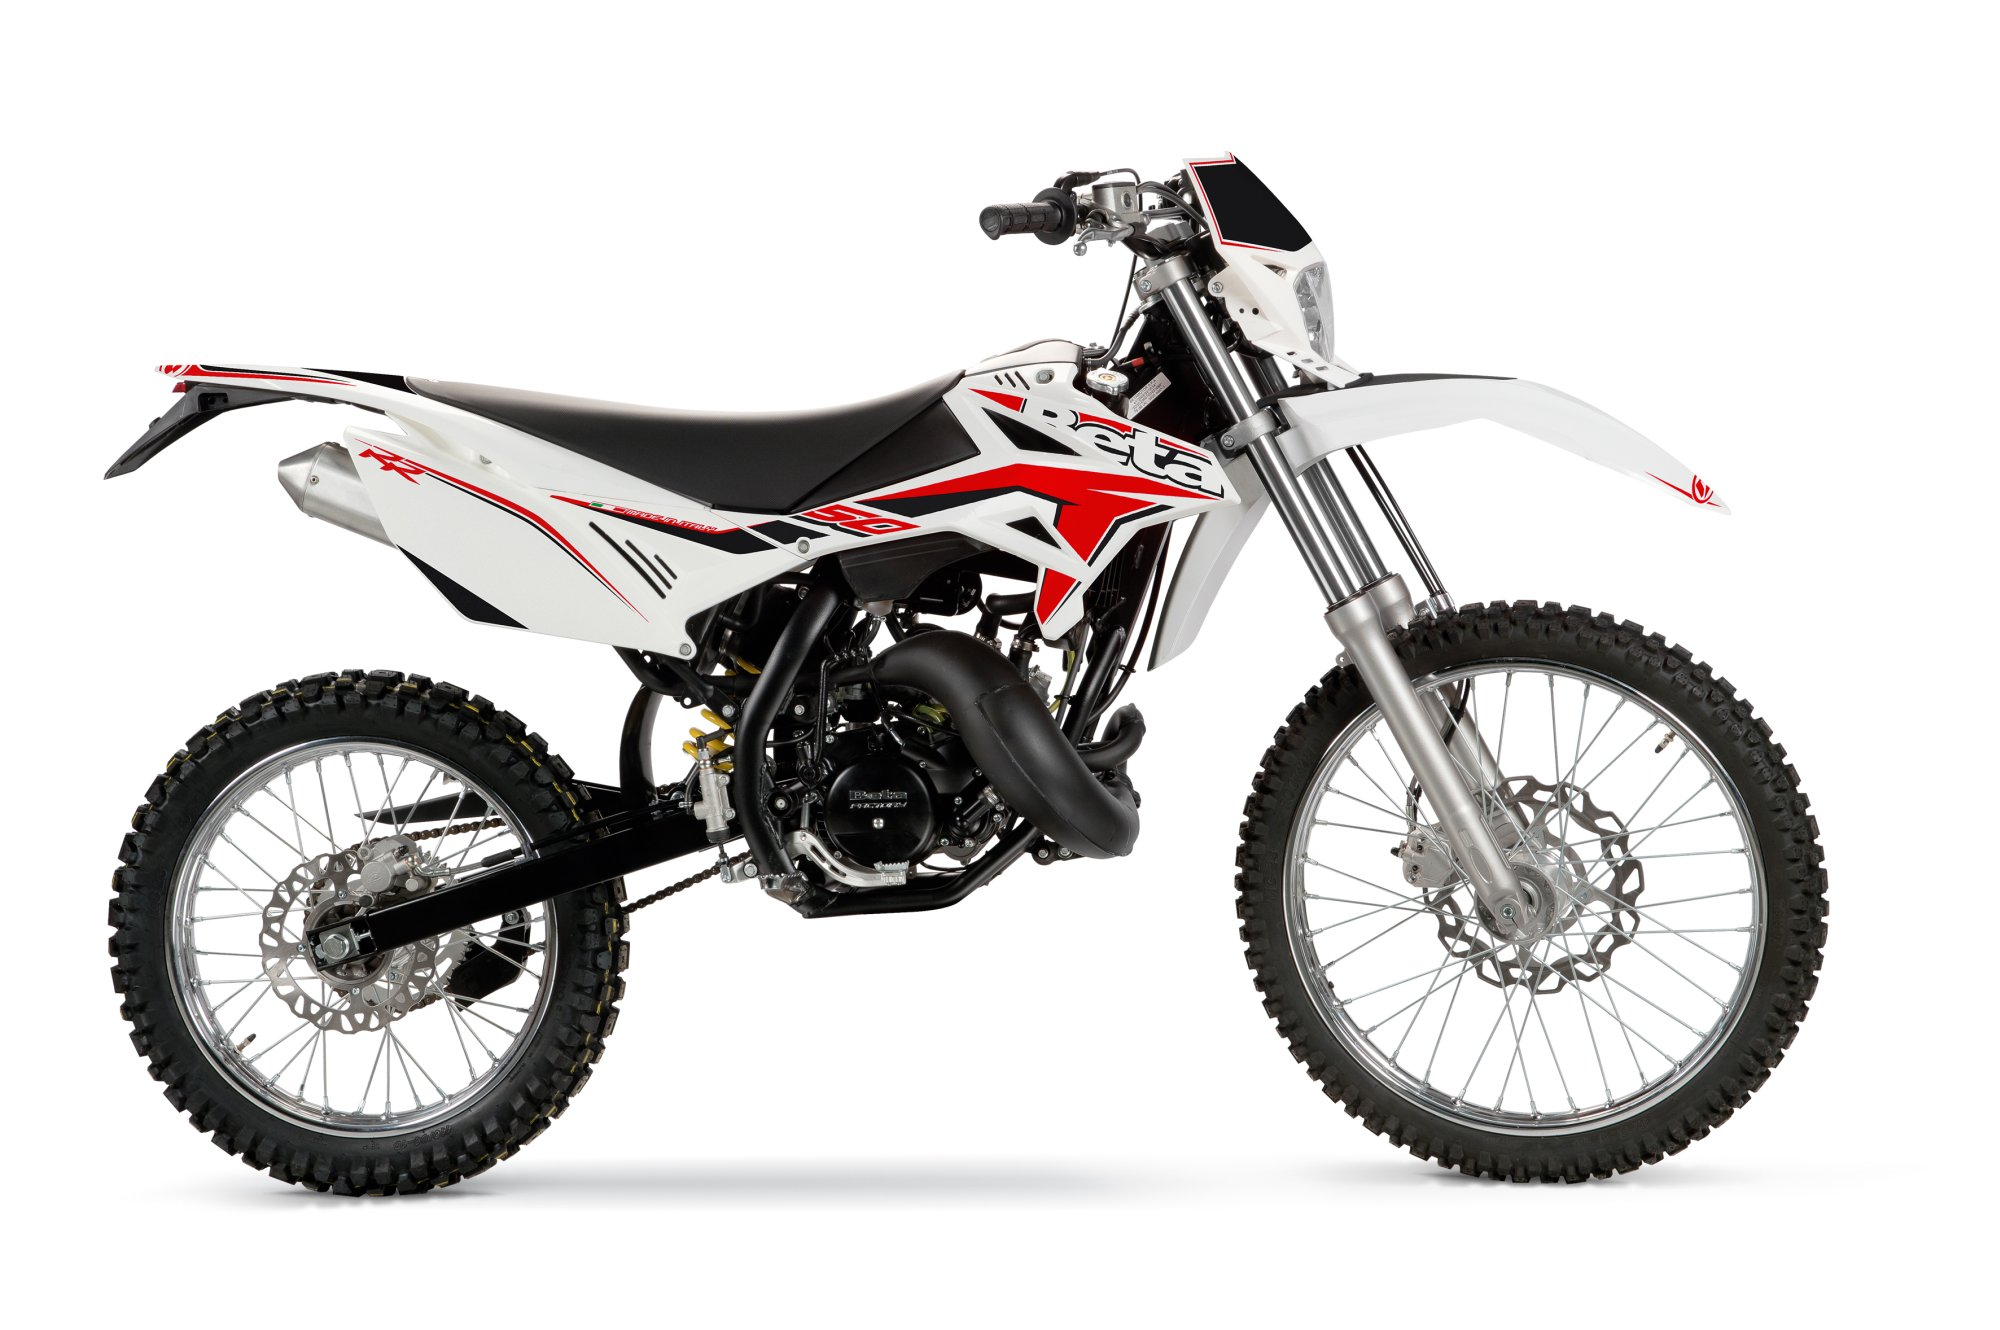 50ccm enduro top 5 50ccm enduros 2016 2017 youtube pin. Black Bedroom Furniture Sets. Home Design Ideas